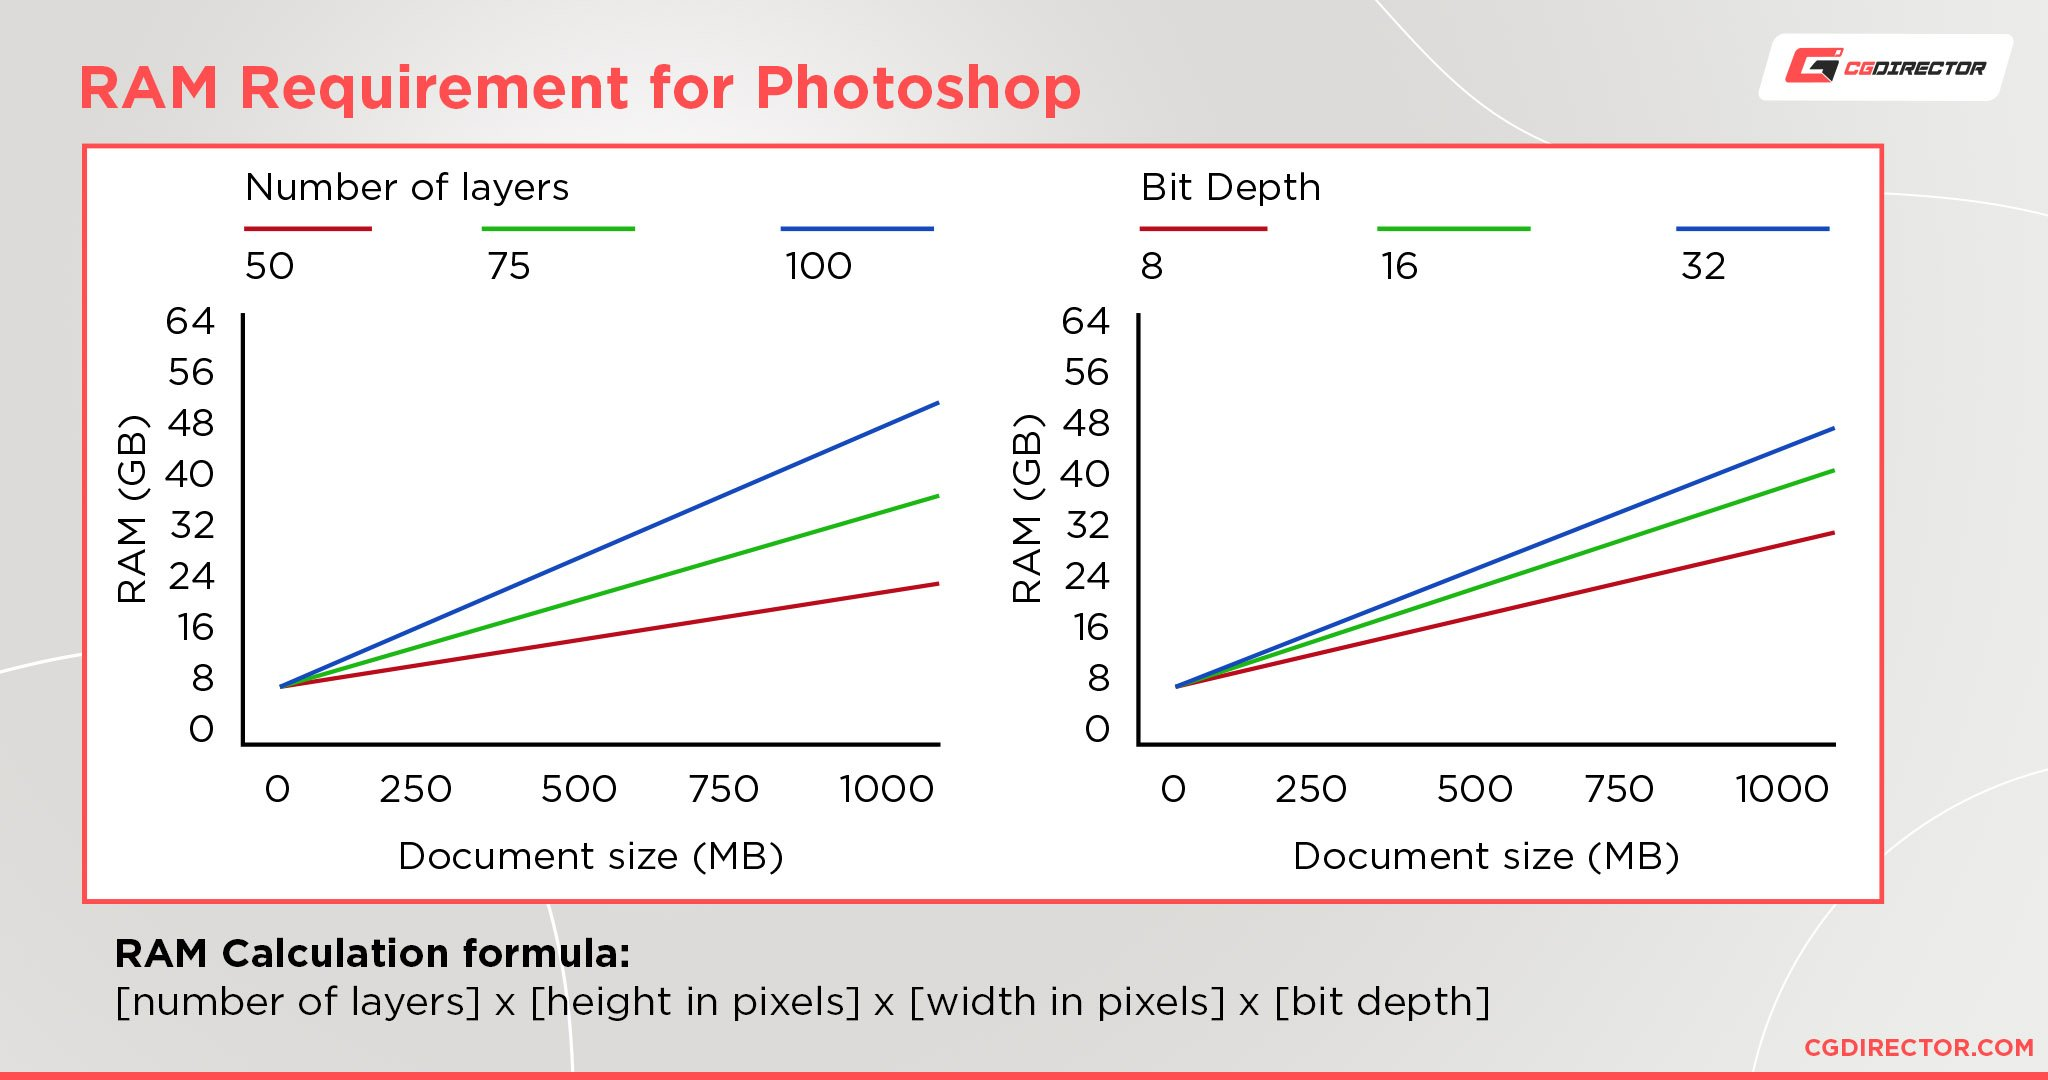 How much RAM do you need for Adobe Photoshop